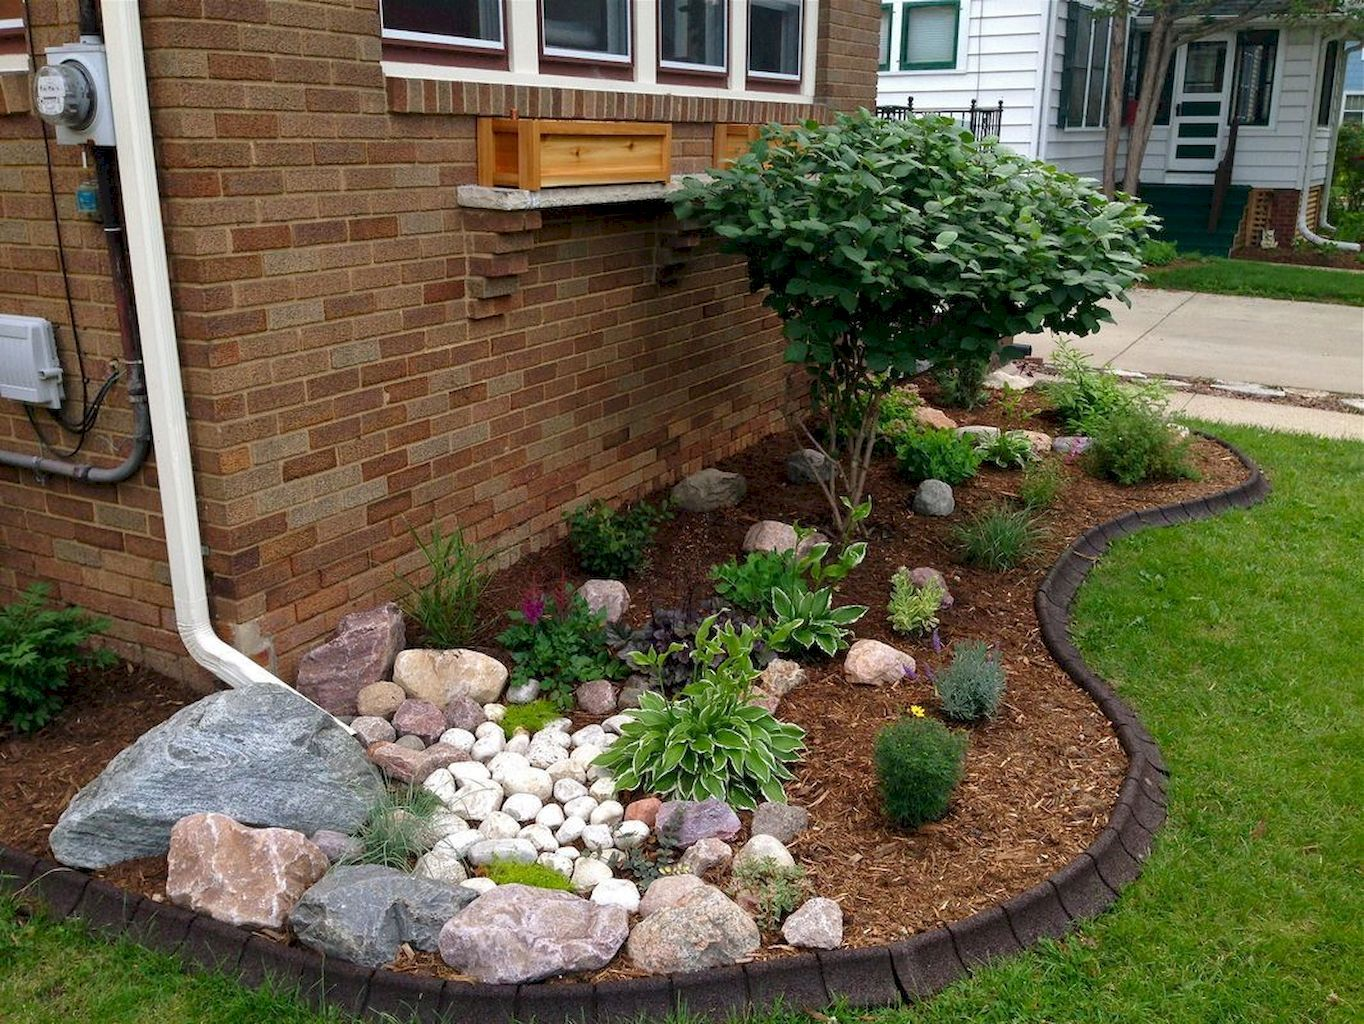 75 Low Maintenance Small Front Yard Landscaping Ideas Small Front Yard Landscaping Rock Garden Design Landscaping With Rocks